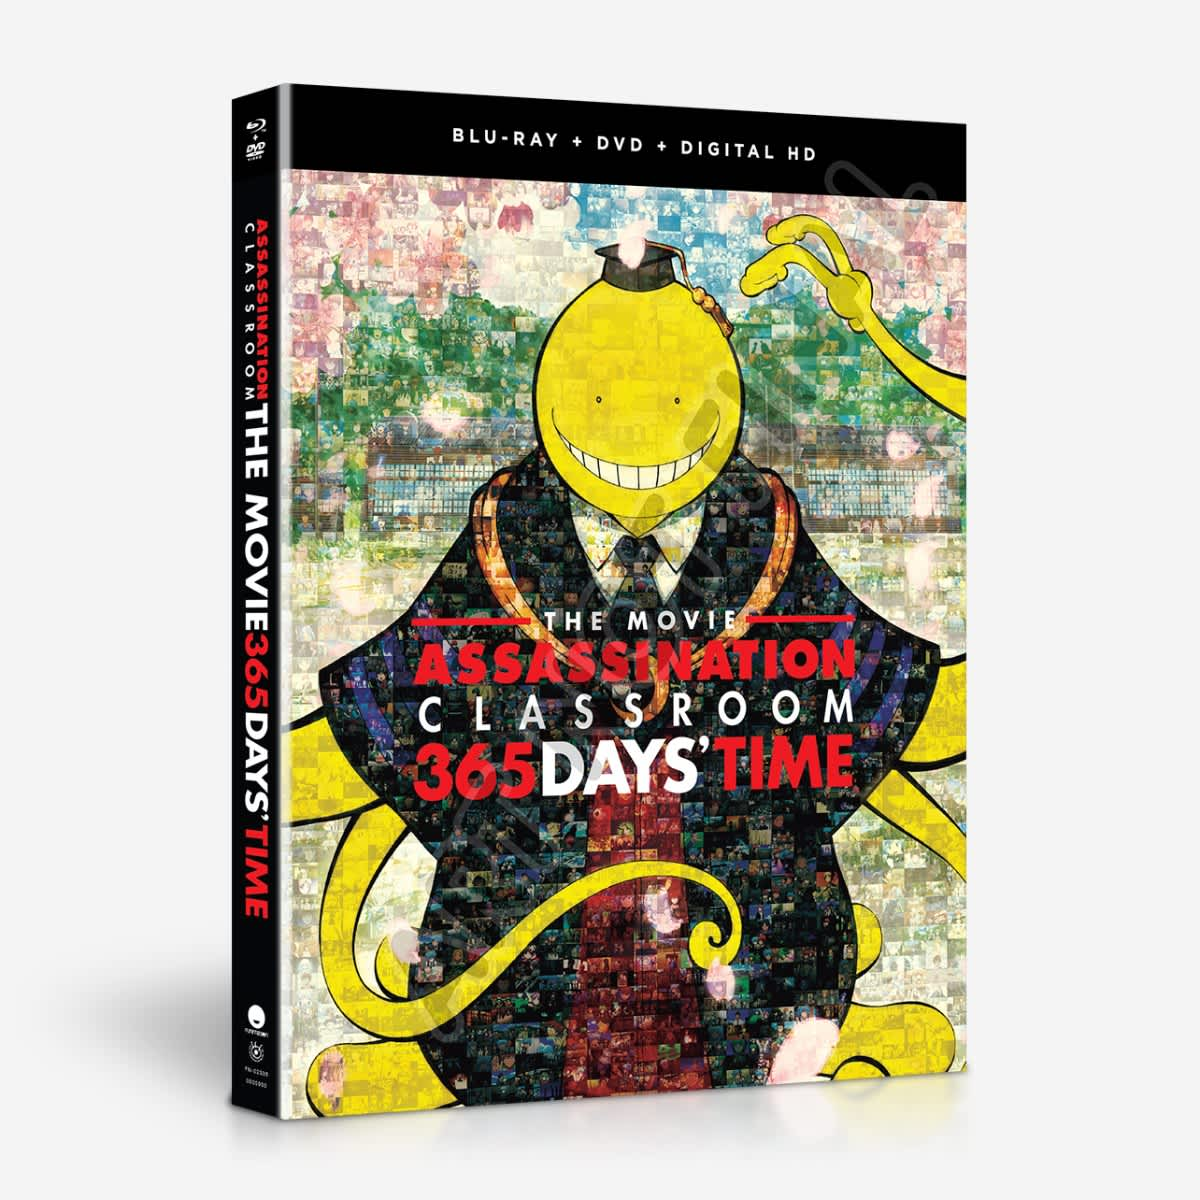 The Movie - 365 Days' Time - BD/DVD Combo home-video